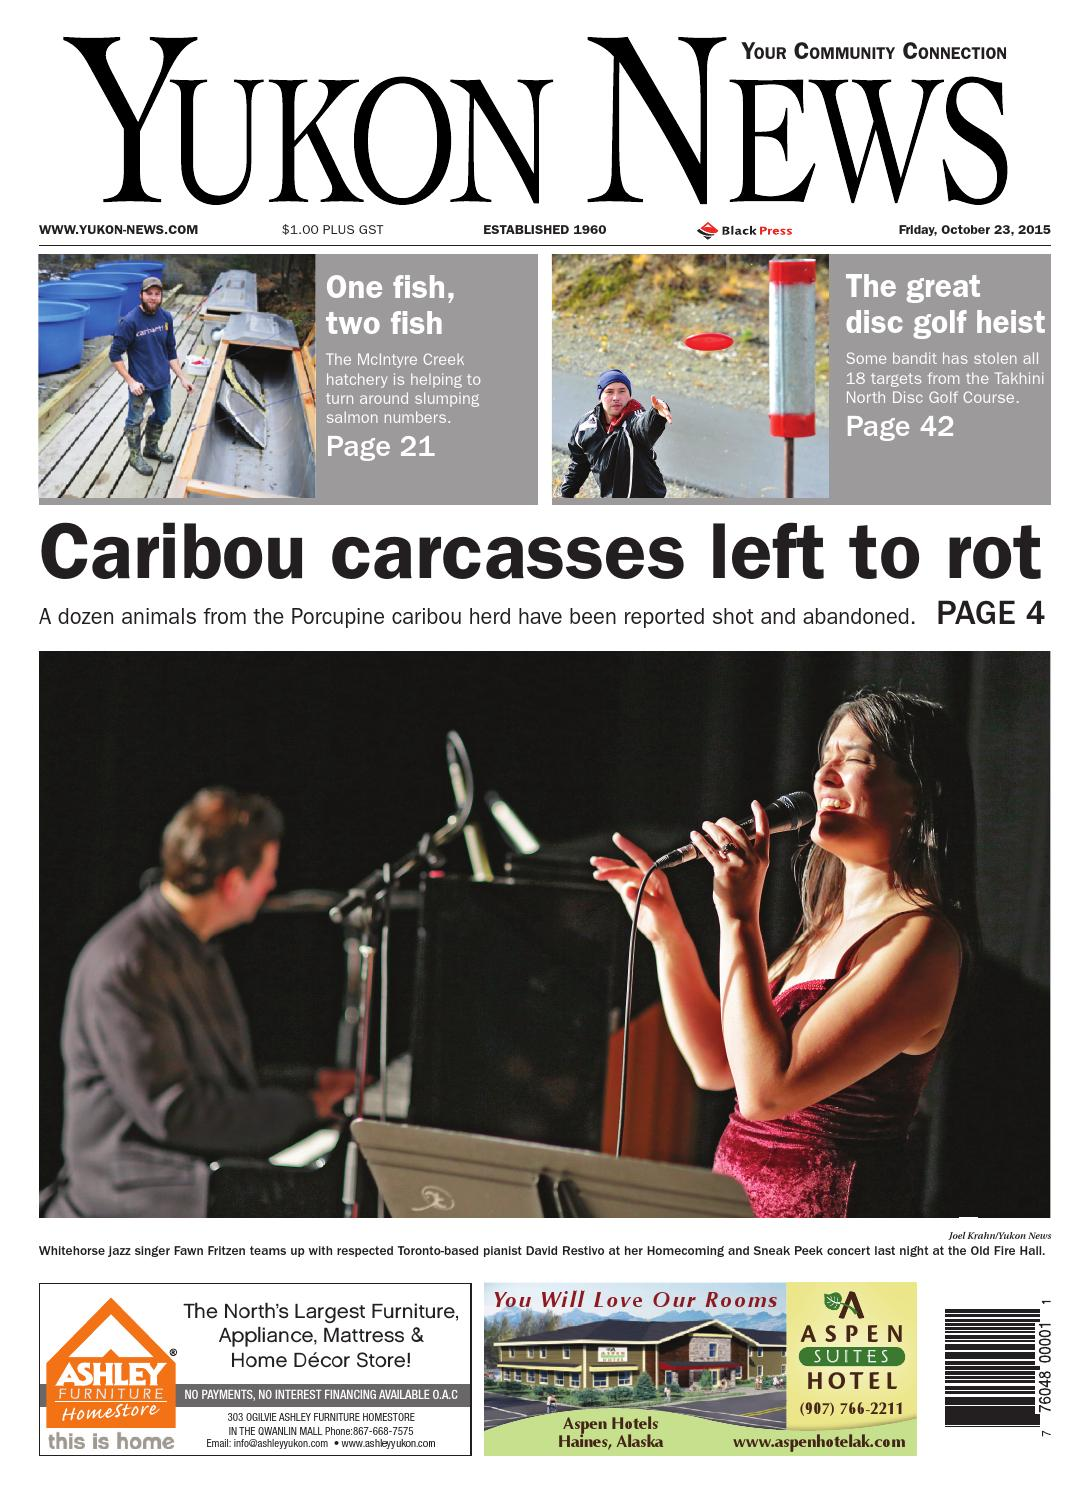 Yukon news, october 02, 2015 by black press   issuu